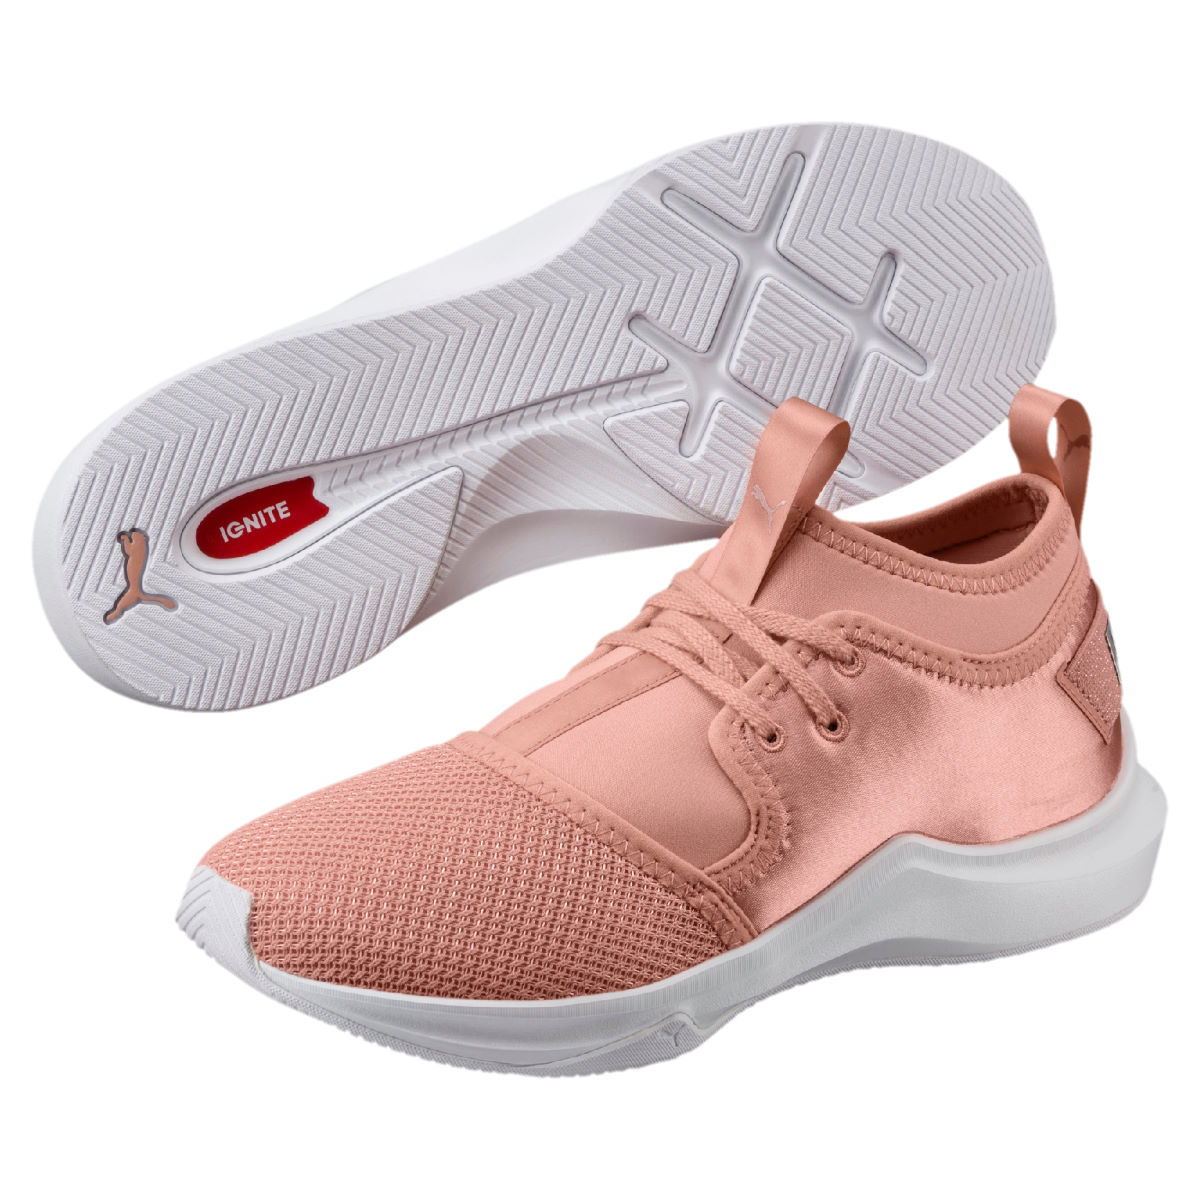 Chaussures Femme Puma Phenom Low Satin EP - UK 8.5 peach-white